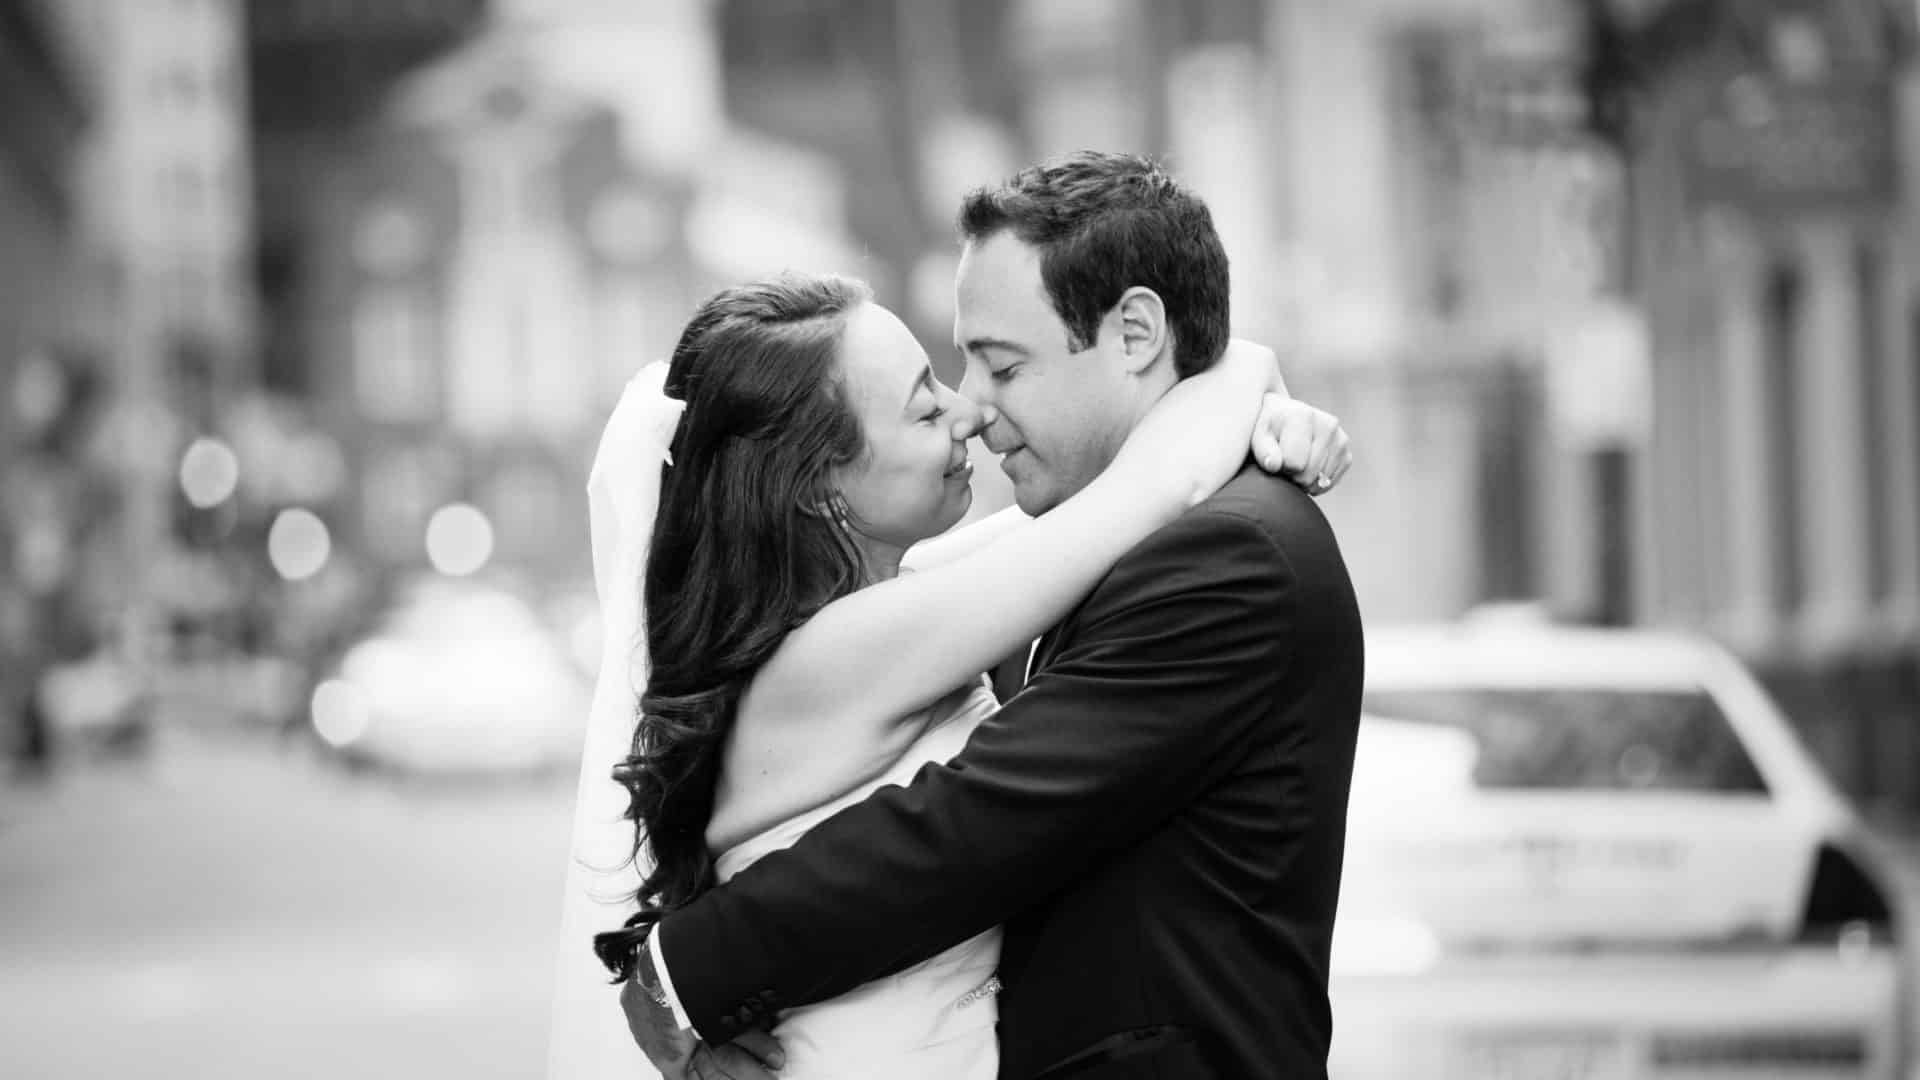 A kiss in the street after their first look